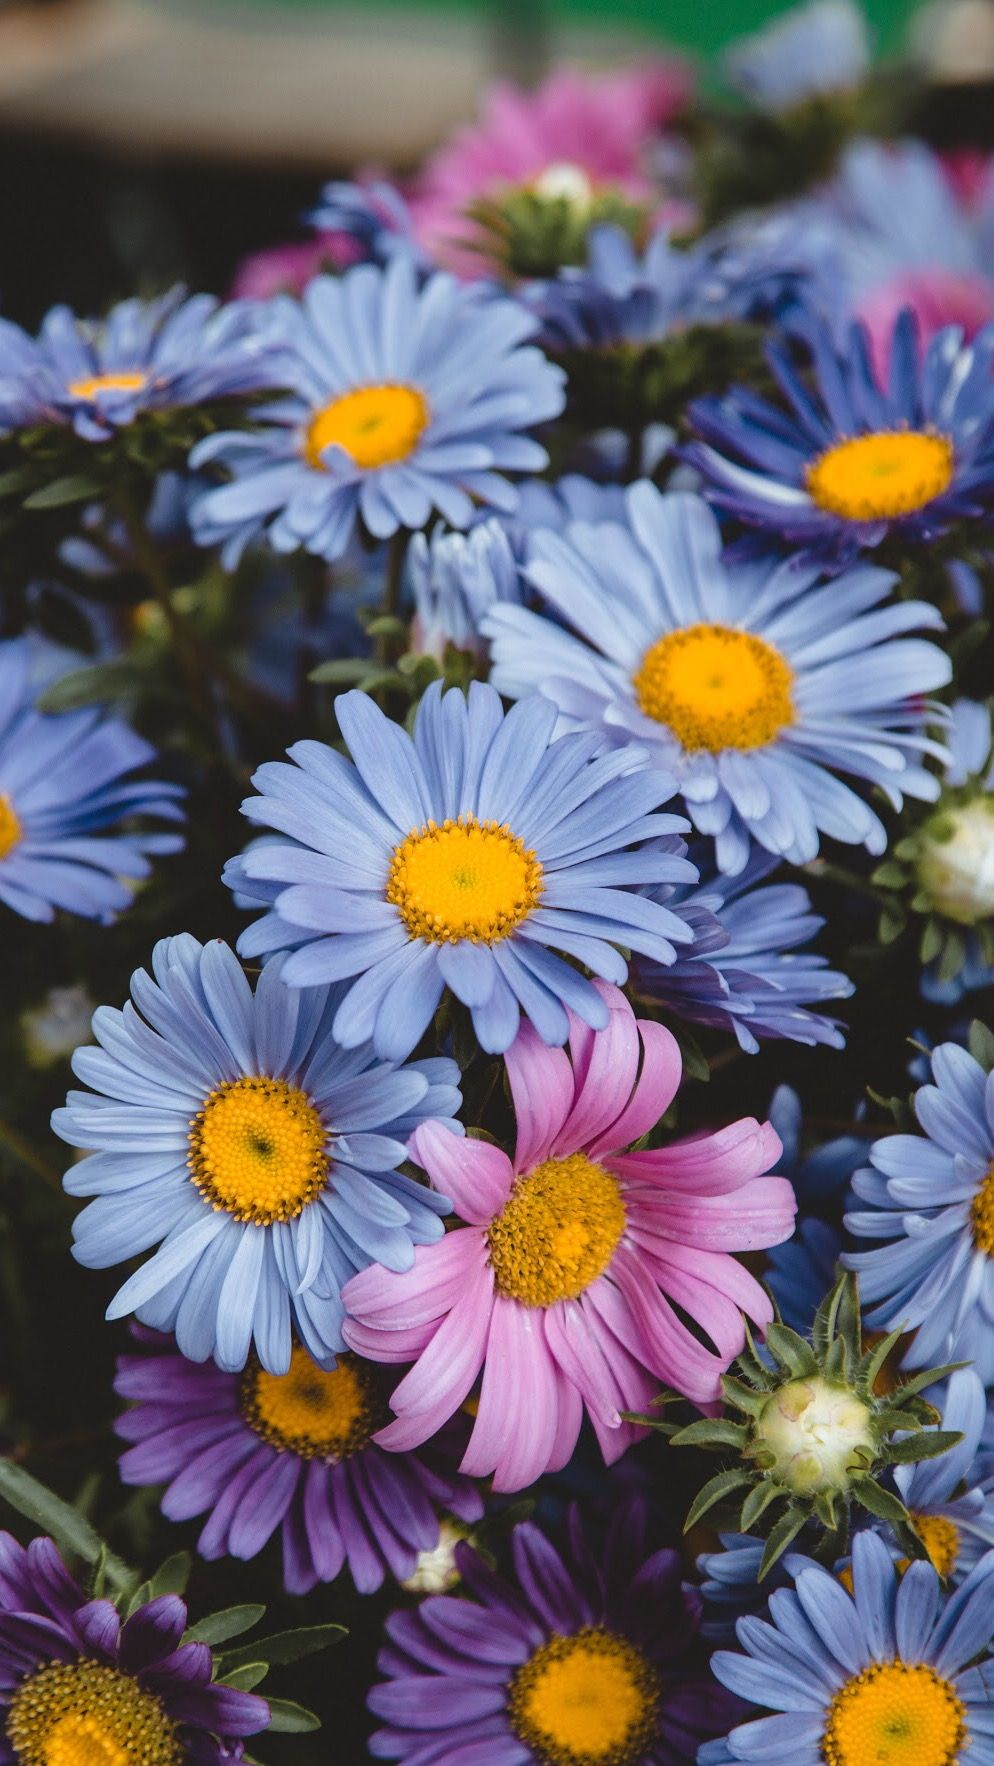 Pin by lanette preston on daisy crazy pinterest flowers flower pin by lanette preston on daisy crazy pinterest flowers flower and gardens izmirmasajfo